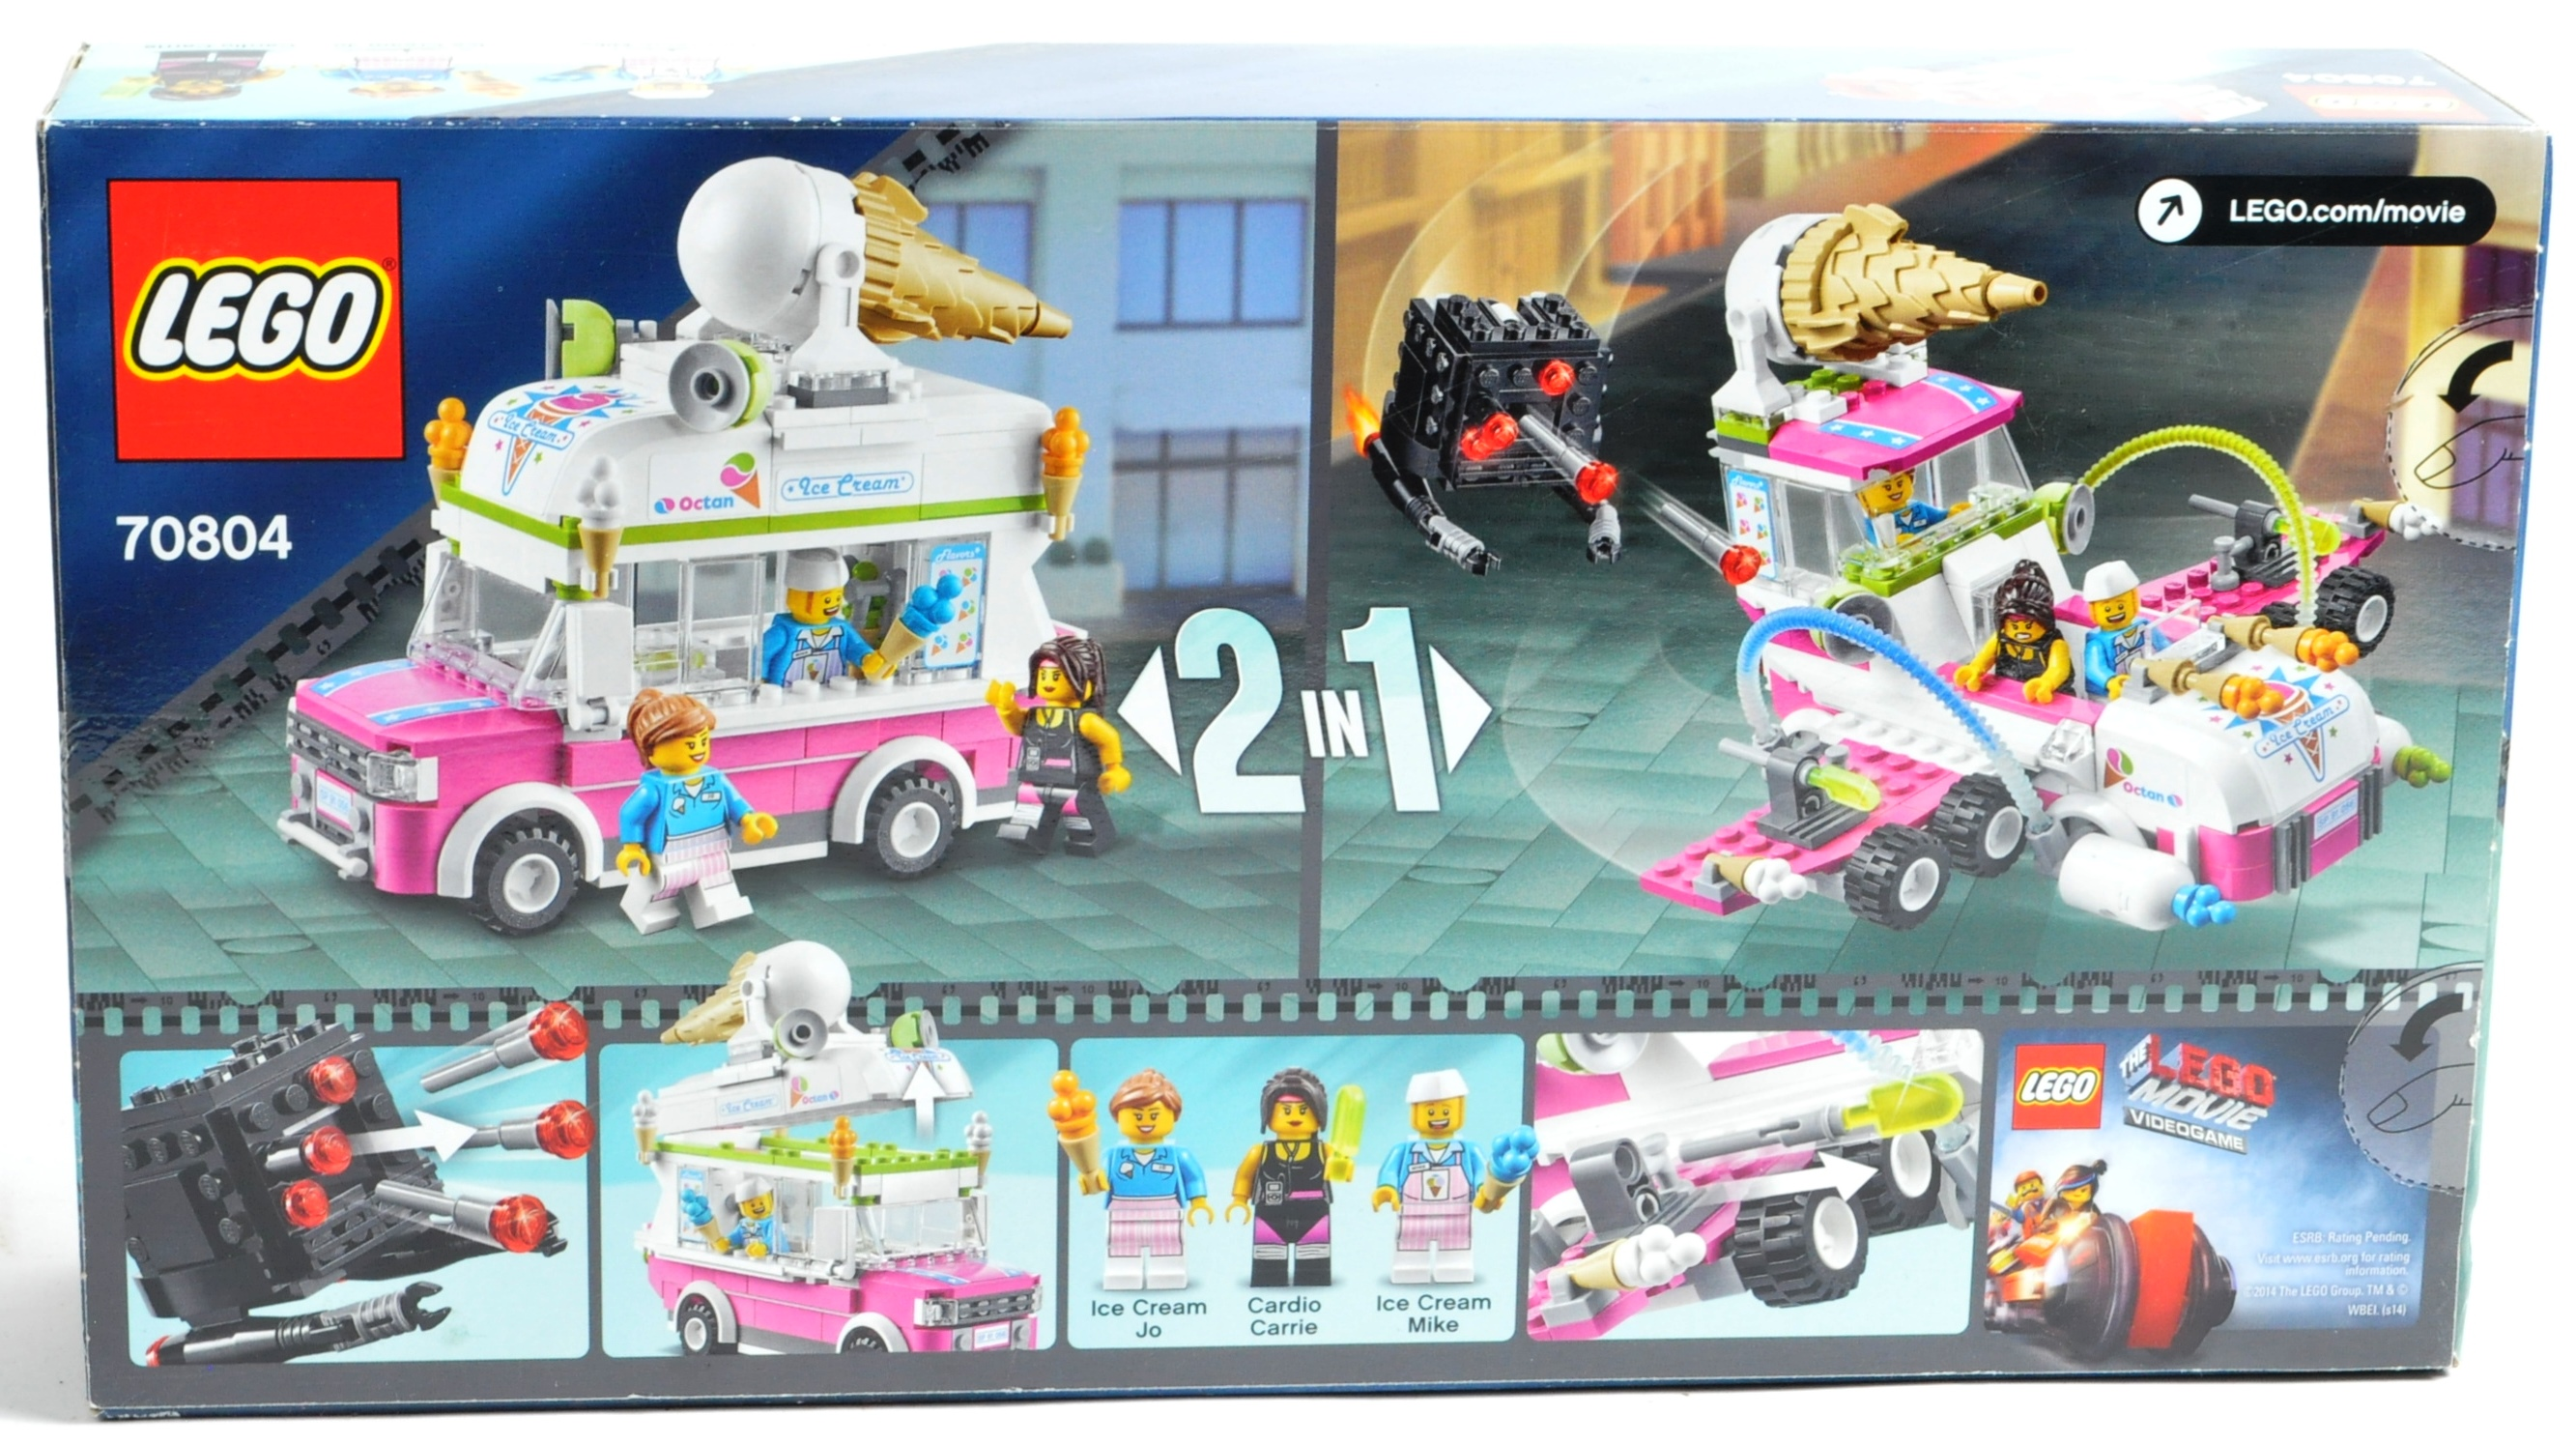 LEGO SETS - THE LEGO MOVIE - COLLECTION OF X7 LEGO MOVIE SETS - Image 15 of 17